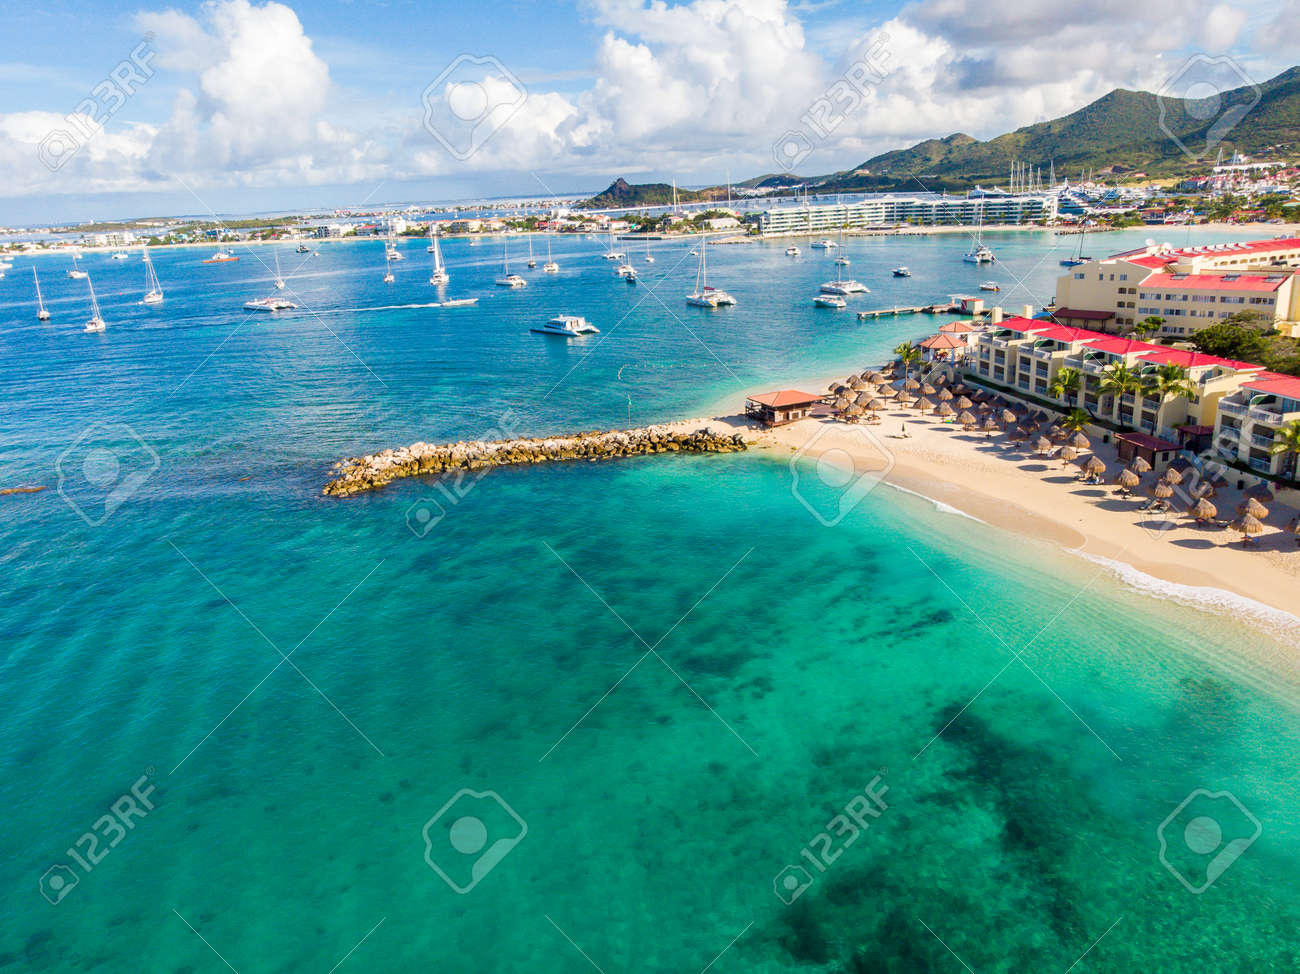 The caribbean island of St.Maarten landscape and cityscape. - 163350425